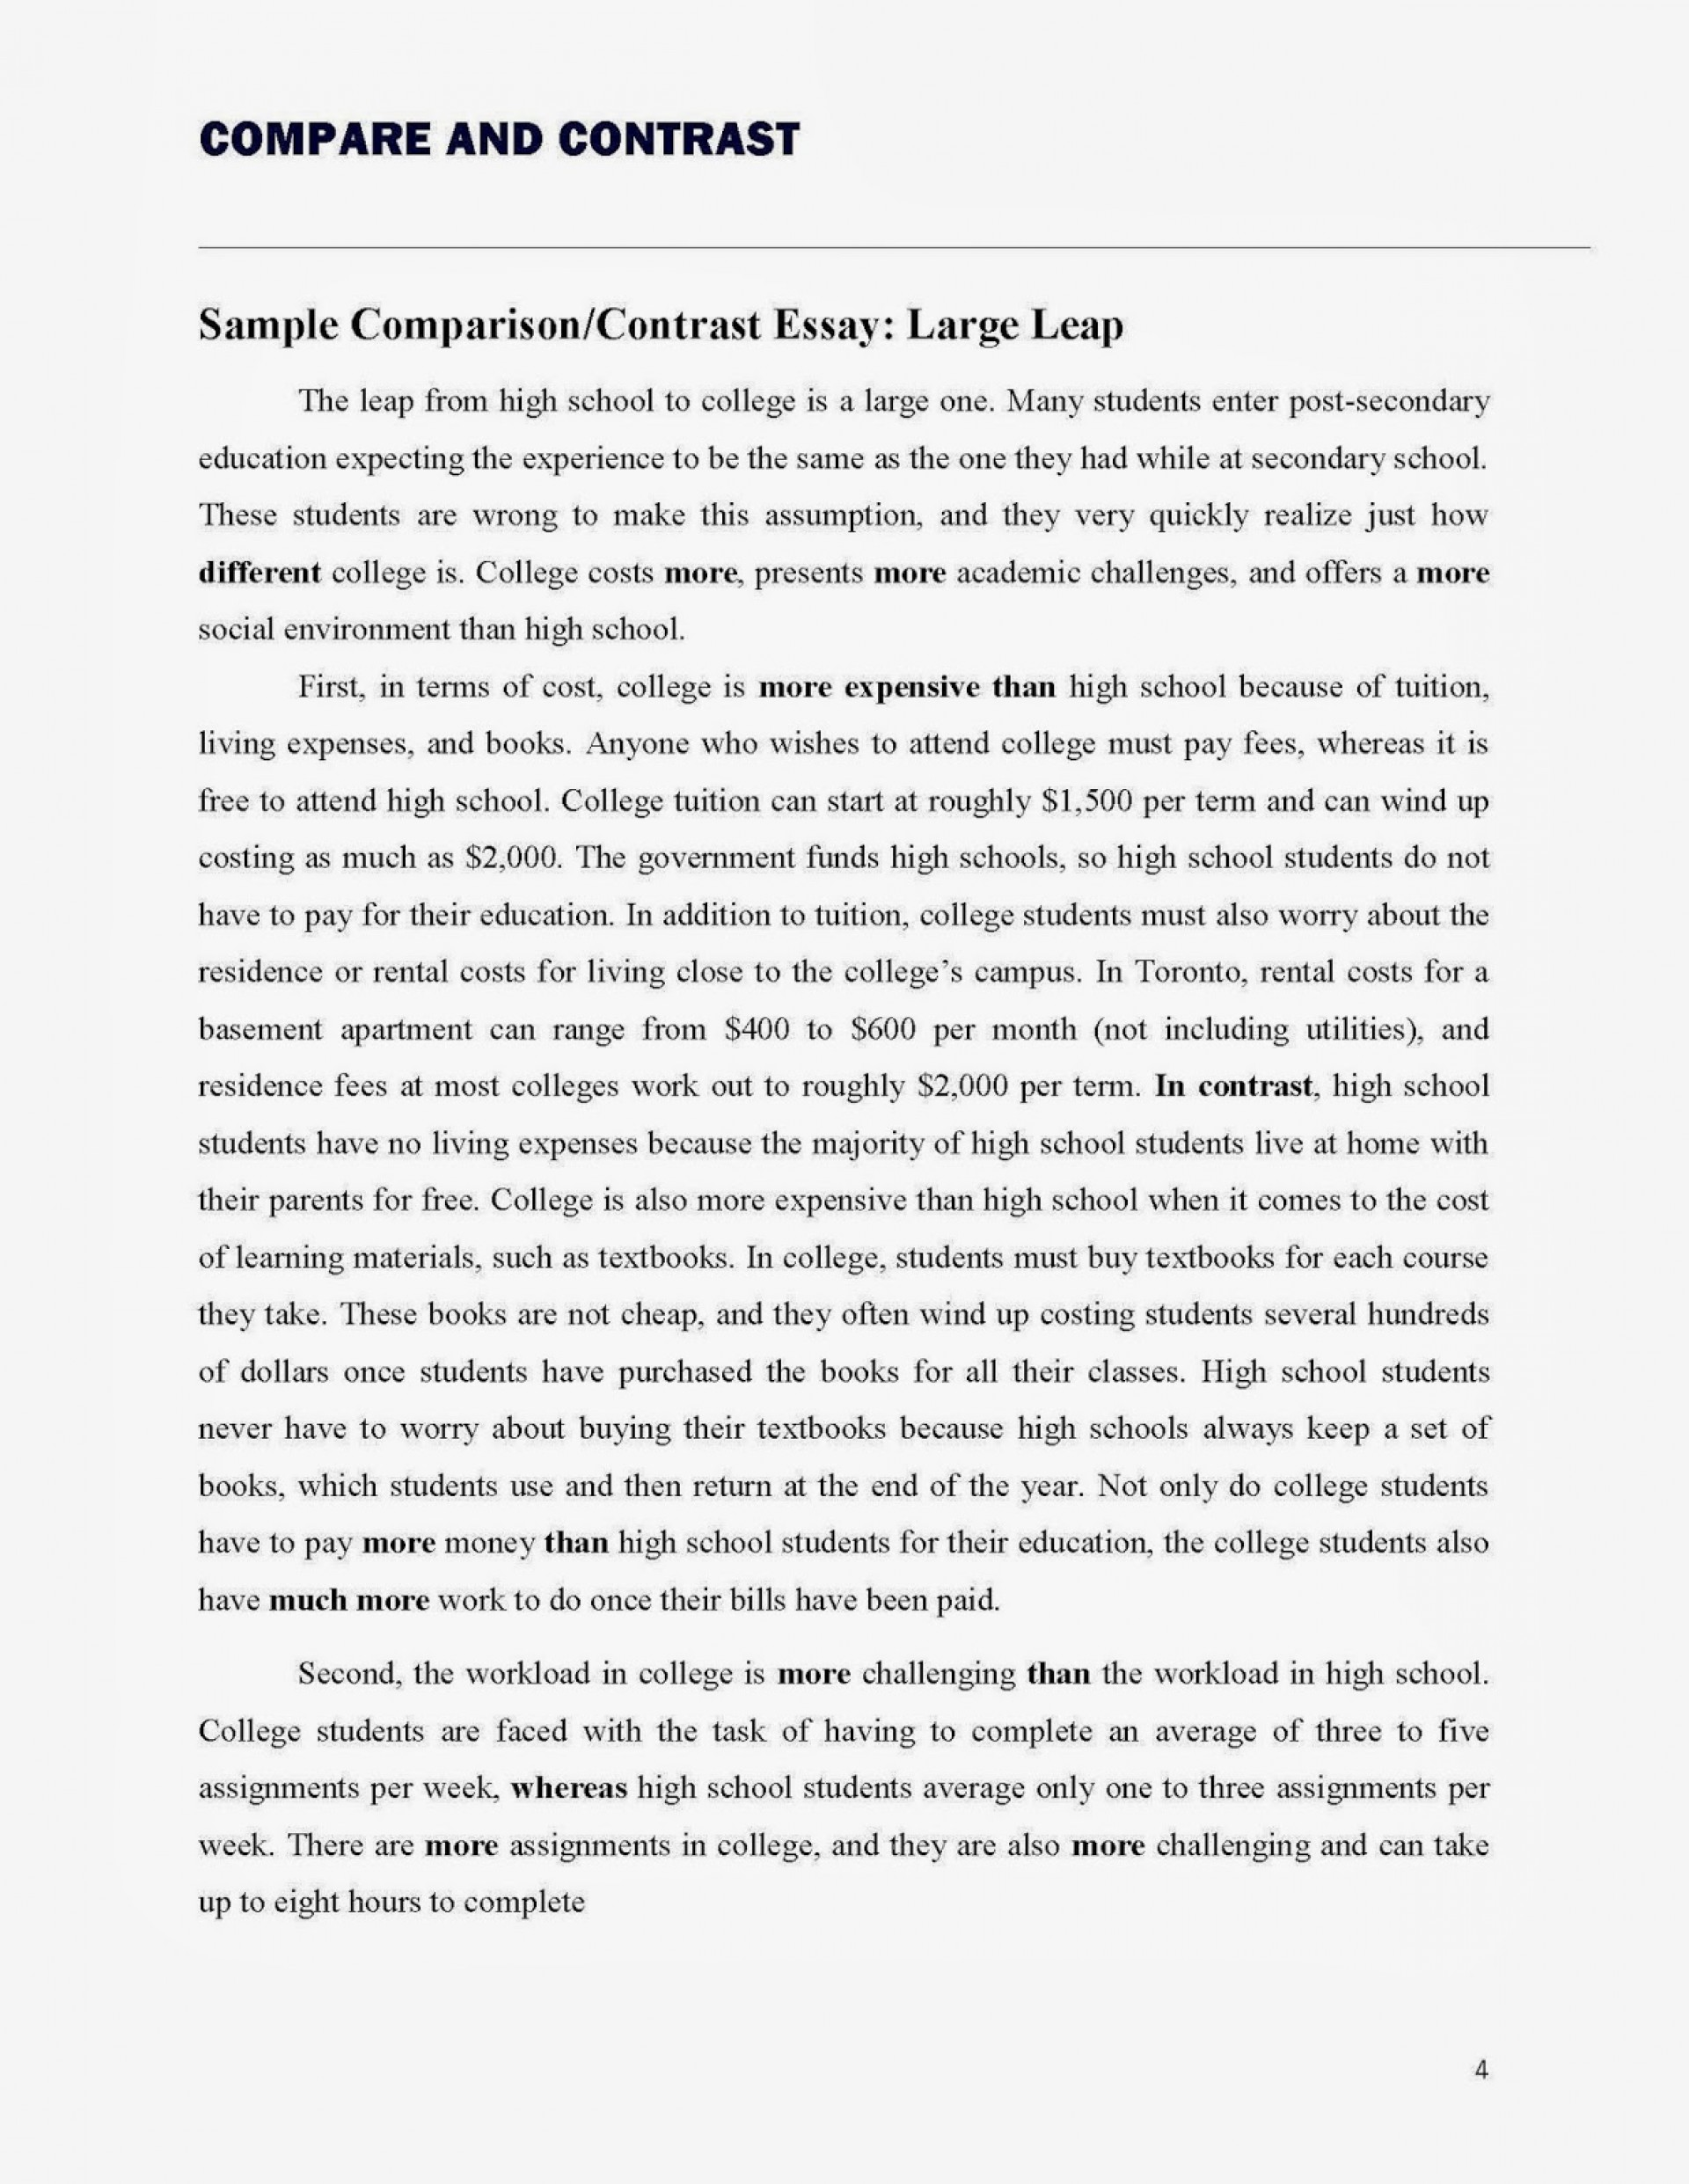 011 Compare And Contrast Essay Compareandcontrastessay Page 4h125 Frightening Prompts 5th Grade Rubric College Ideas 12th 1920